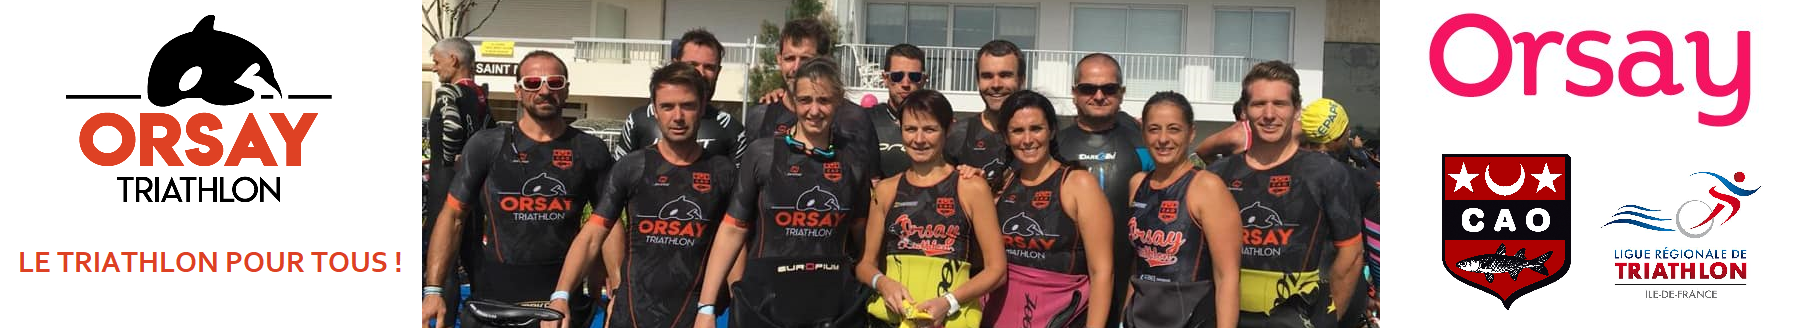 ORSAY TRIATHLON